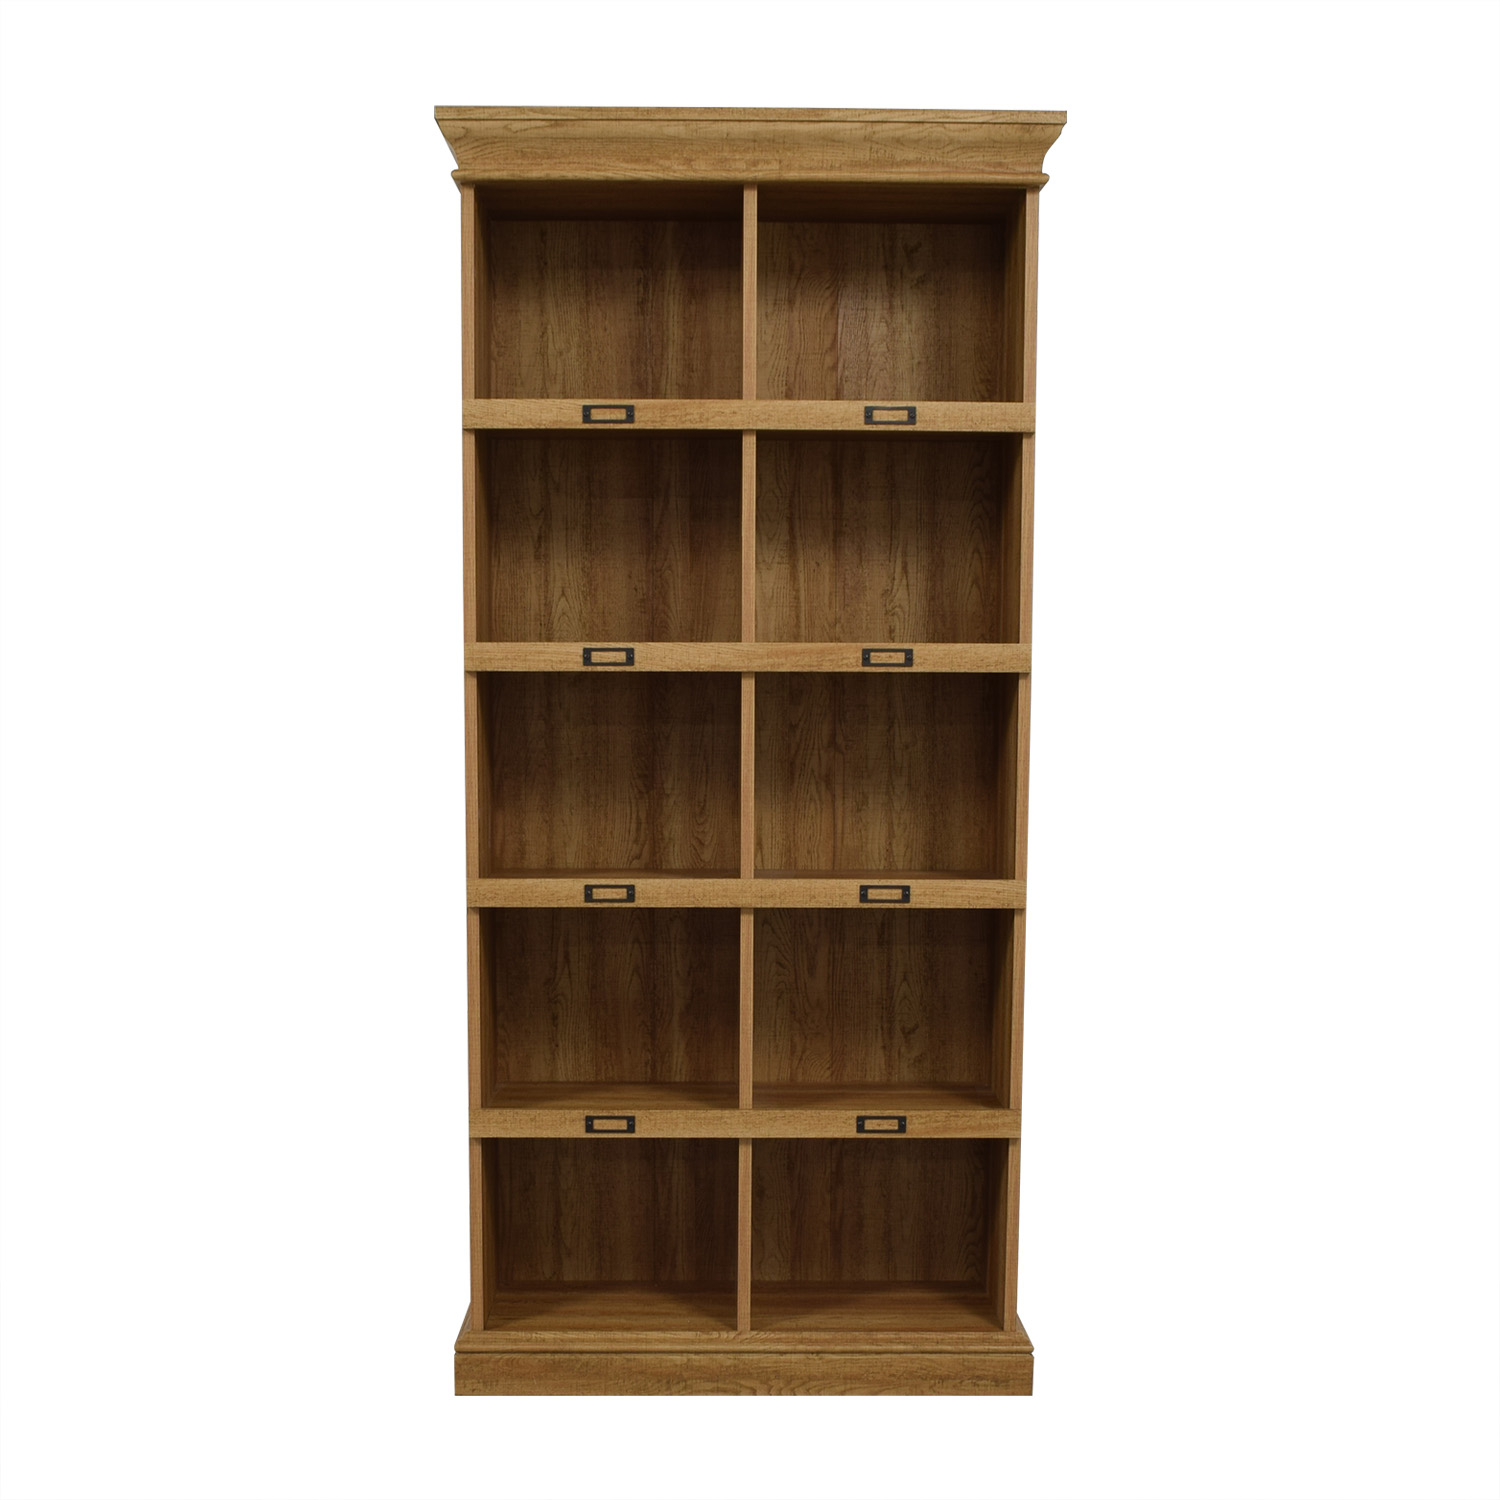 Beachcrest Home Beachcrest Home Bowerbank Standard Bookcase used